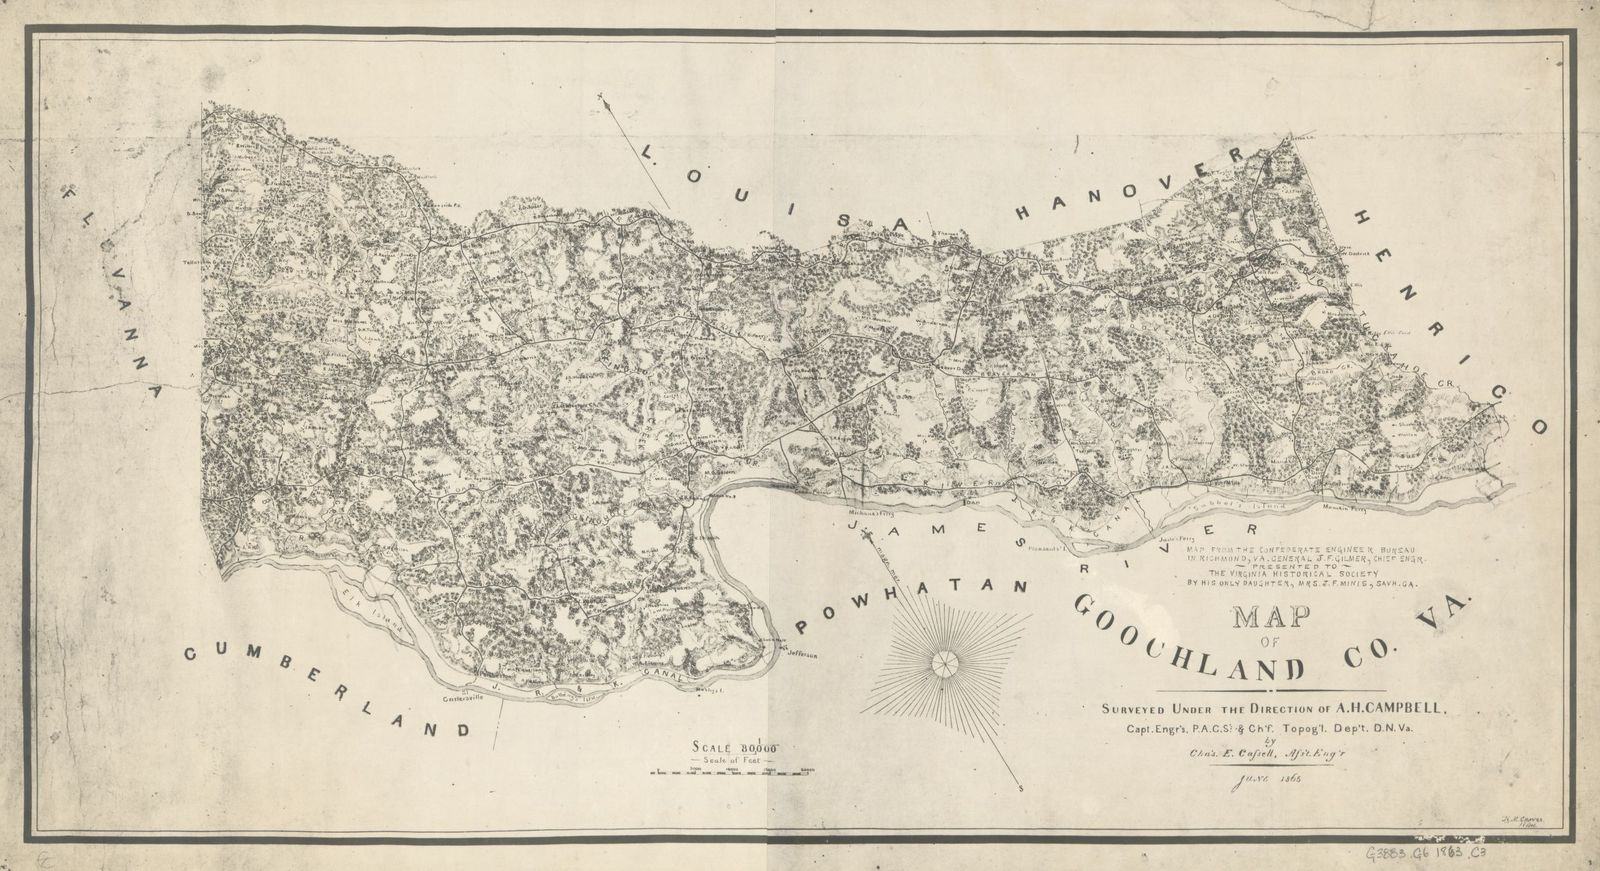 Map of Goochland Co., Va. /